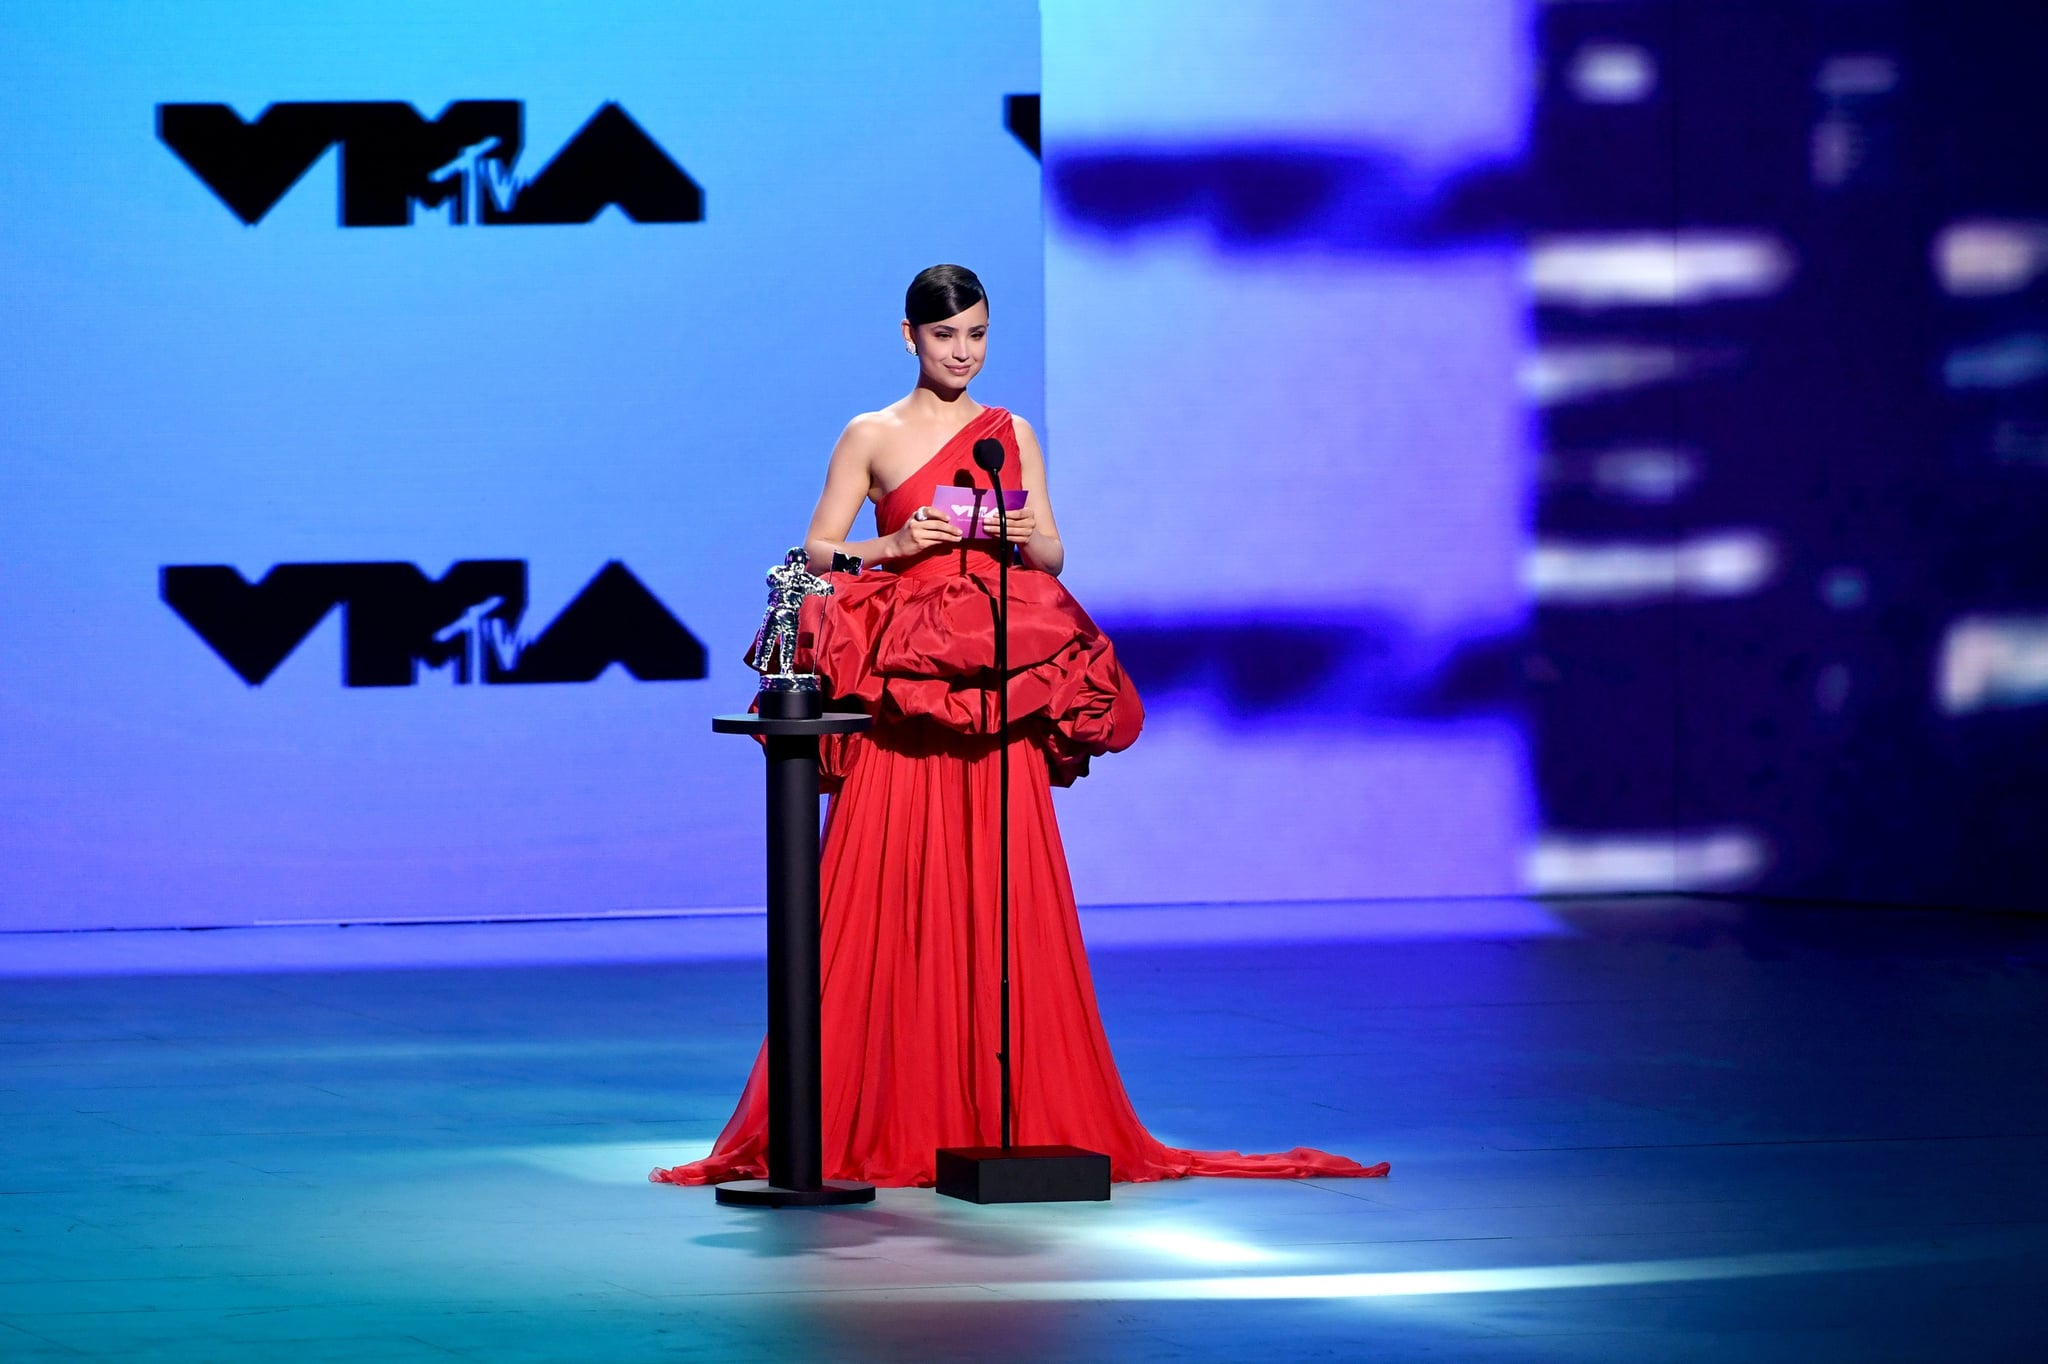 UNSPECIFIED - AUGUST 2020: Sofia Carson speaks onstage during the 2020 MTV Video Music Awards, broadcast on Sunday, August 30th 2020. (Photo by Kevin Winter/MTV VMAs 2020/Getty Images for MTV)